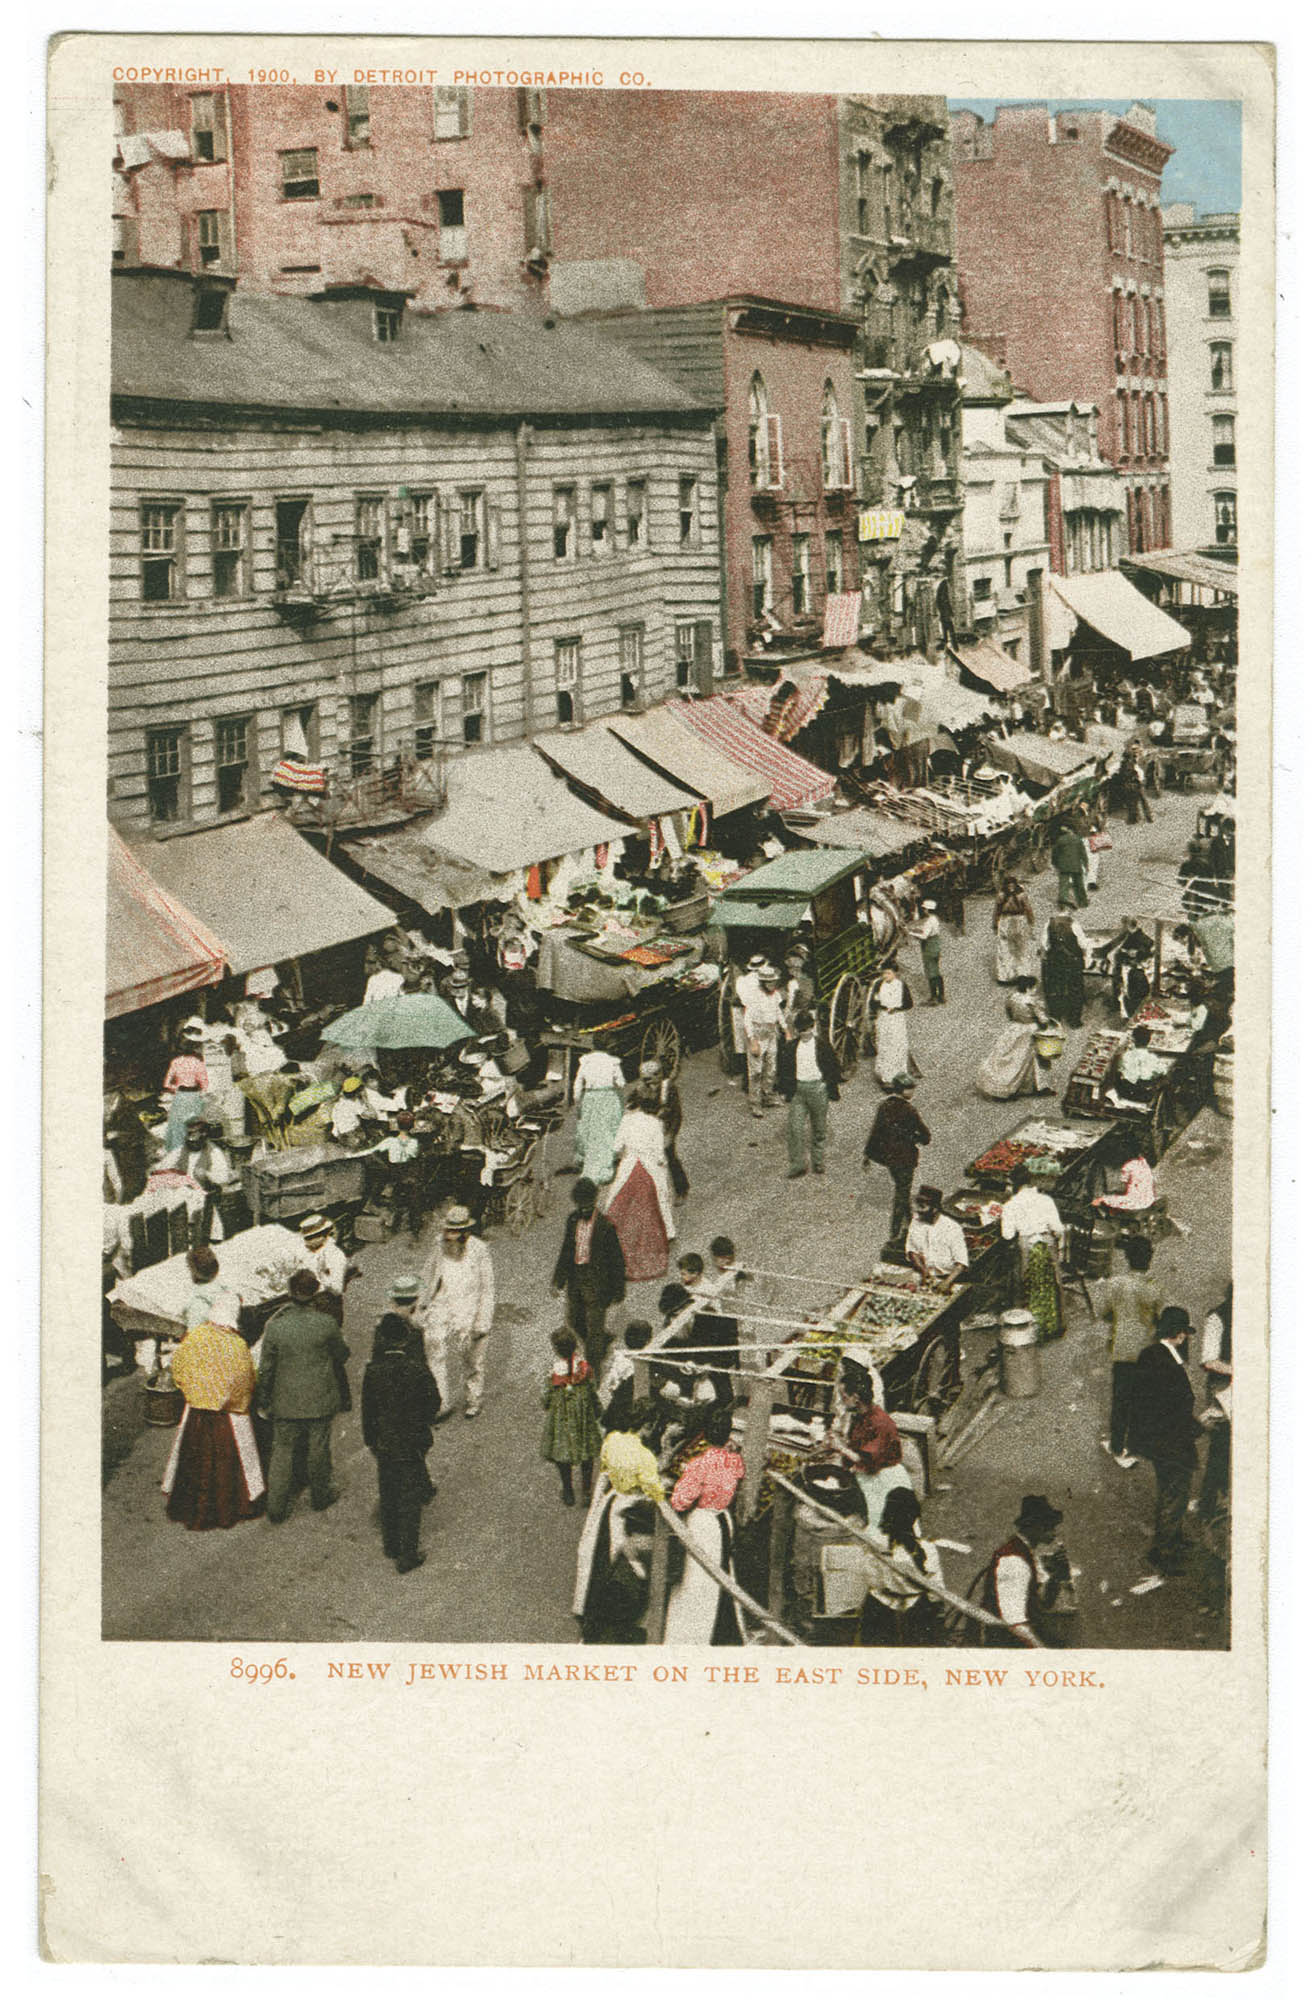 New Jewish Market on the East Side, New York